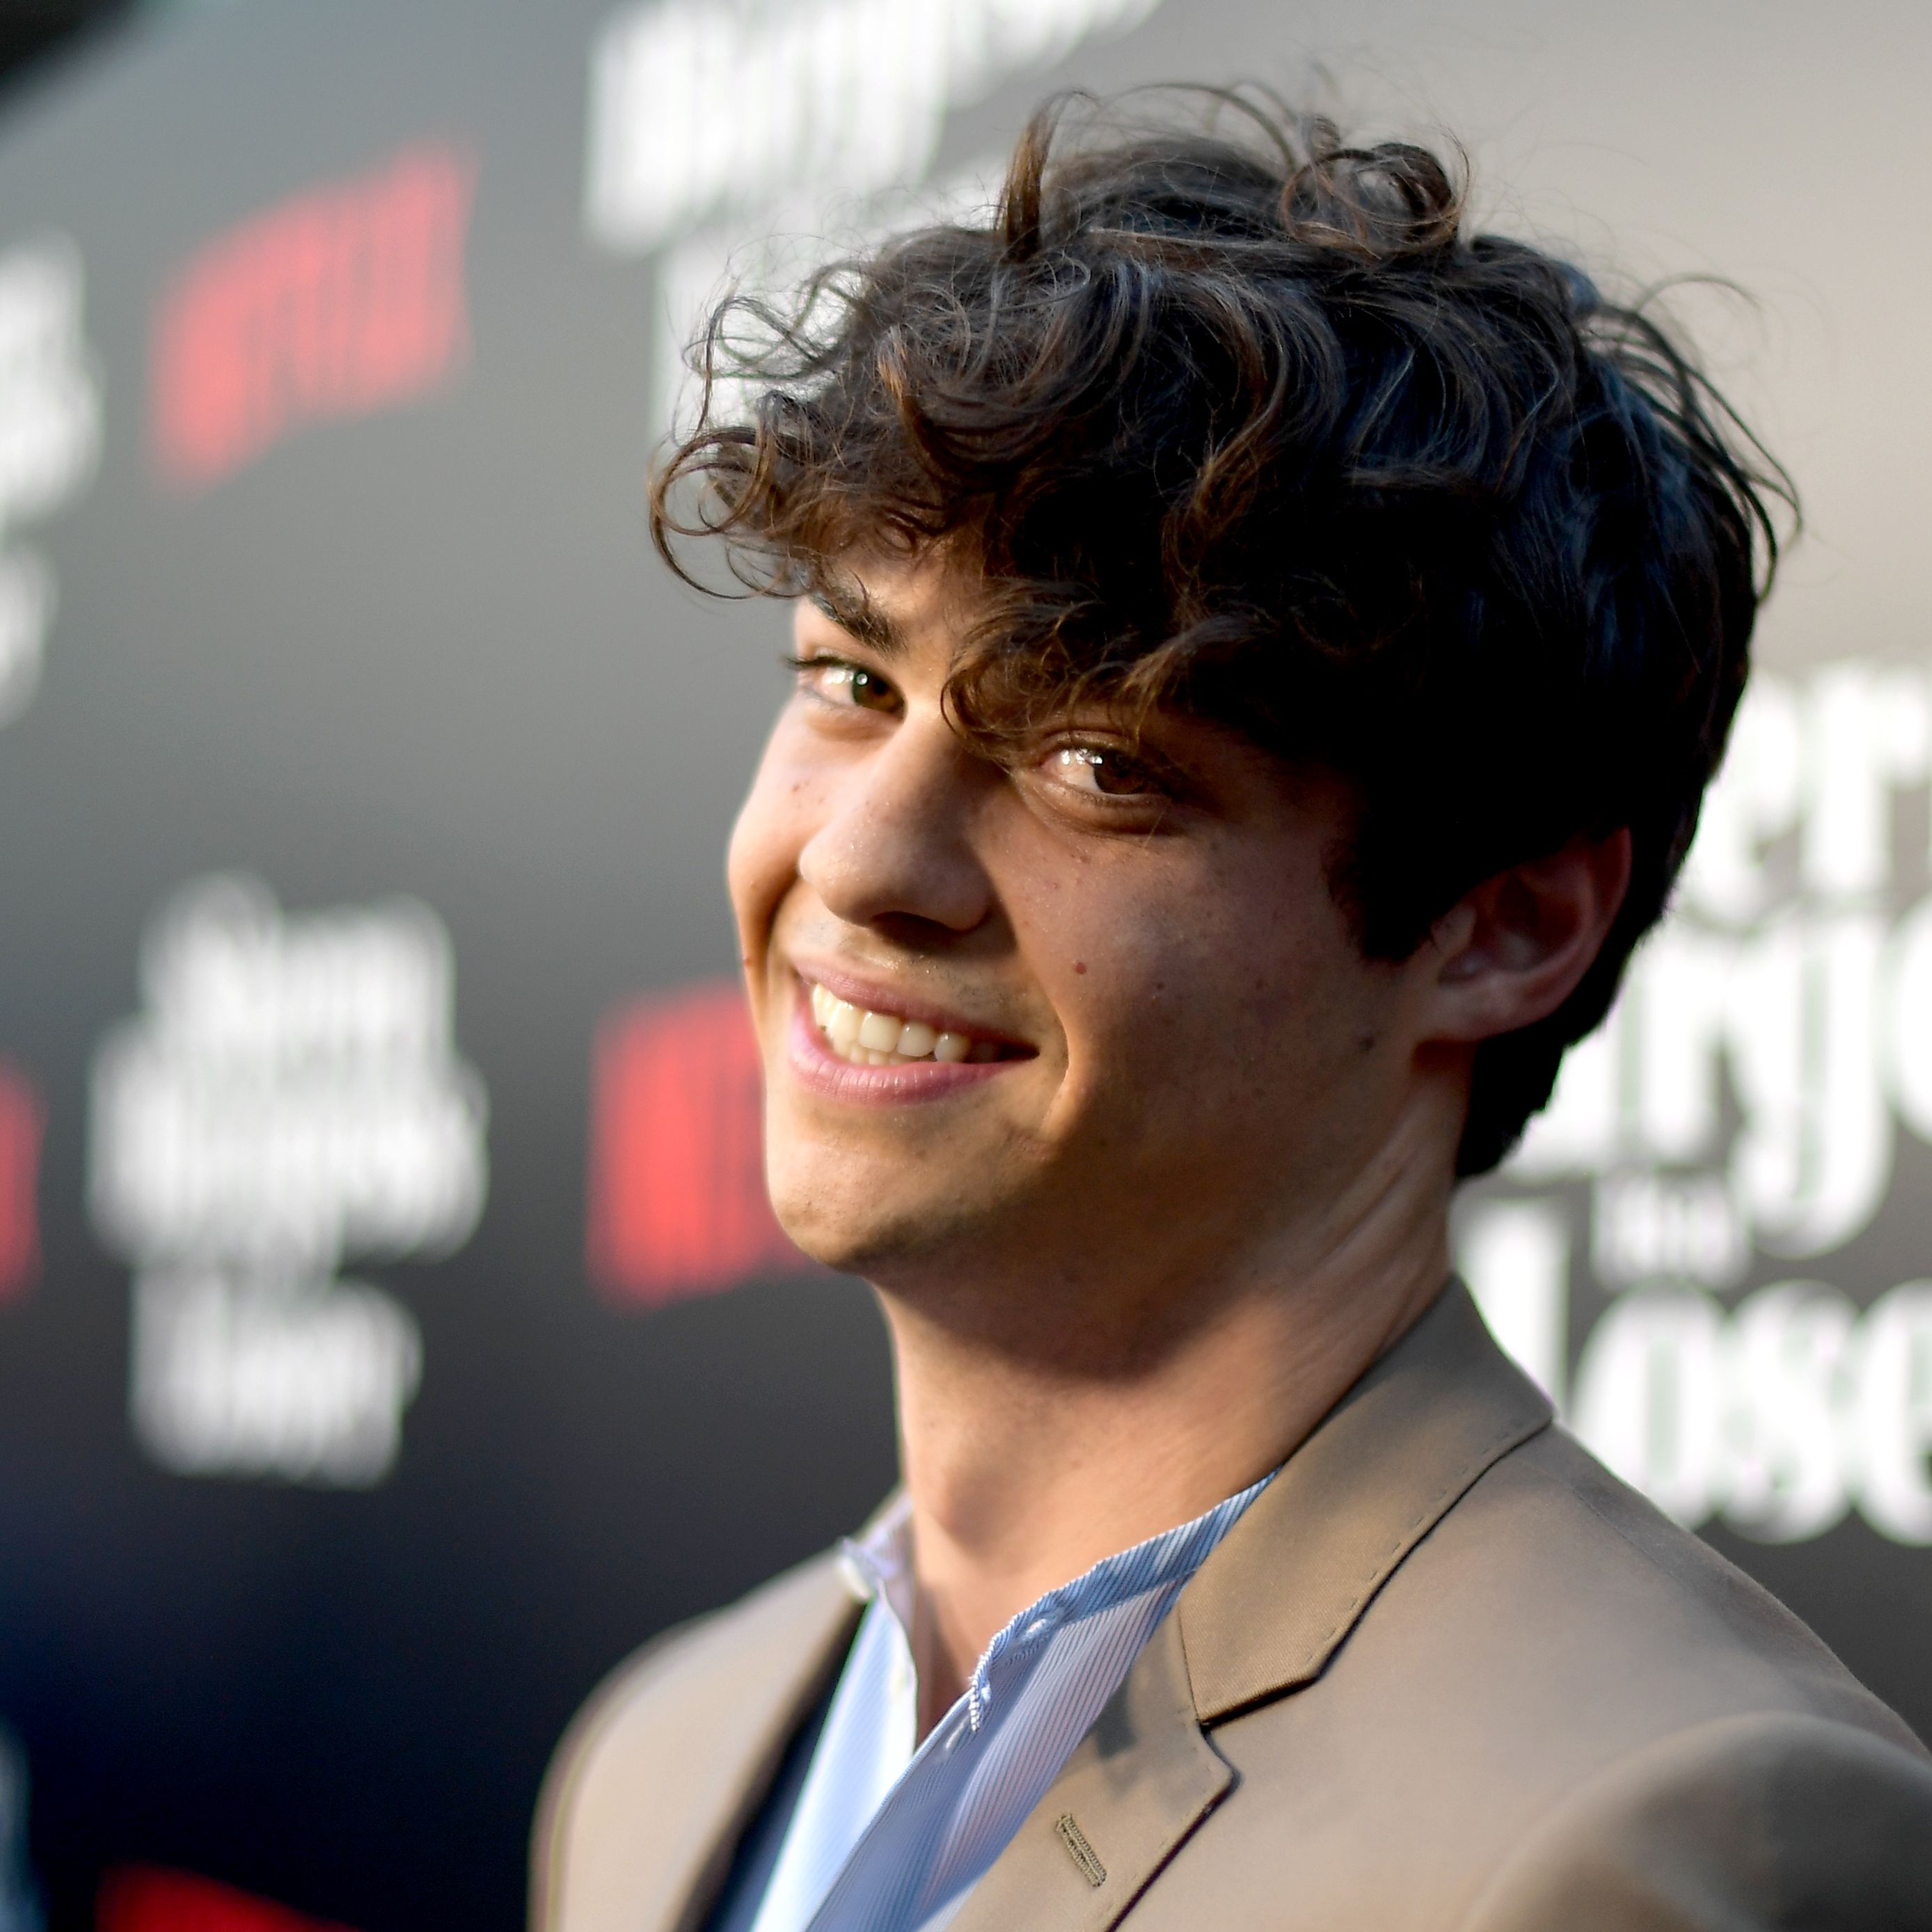 Noah Centineo Might Be in Talks to Play He-Man in Masters of the Universe